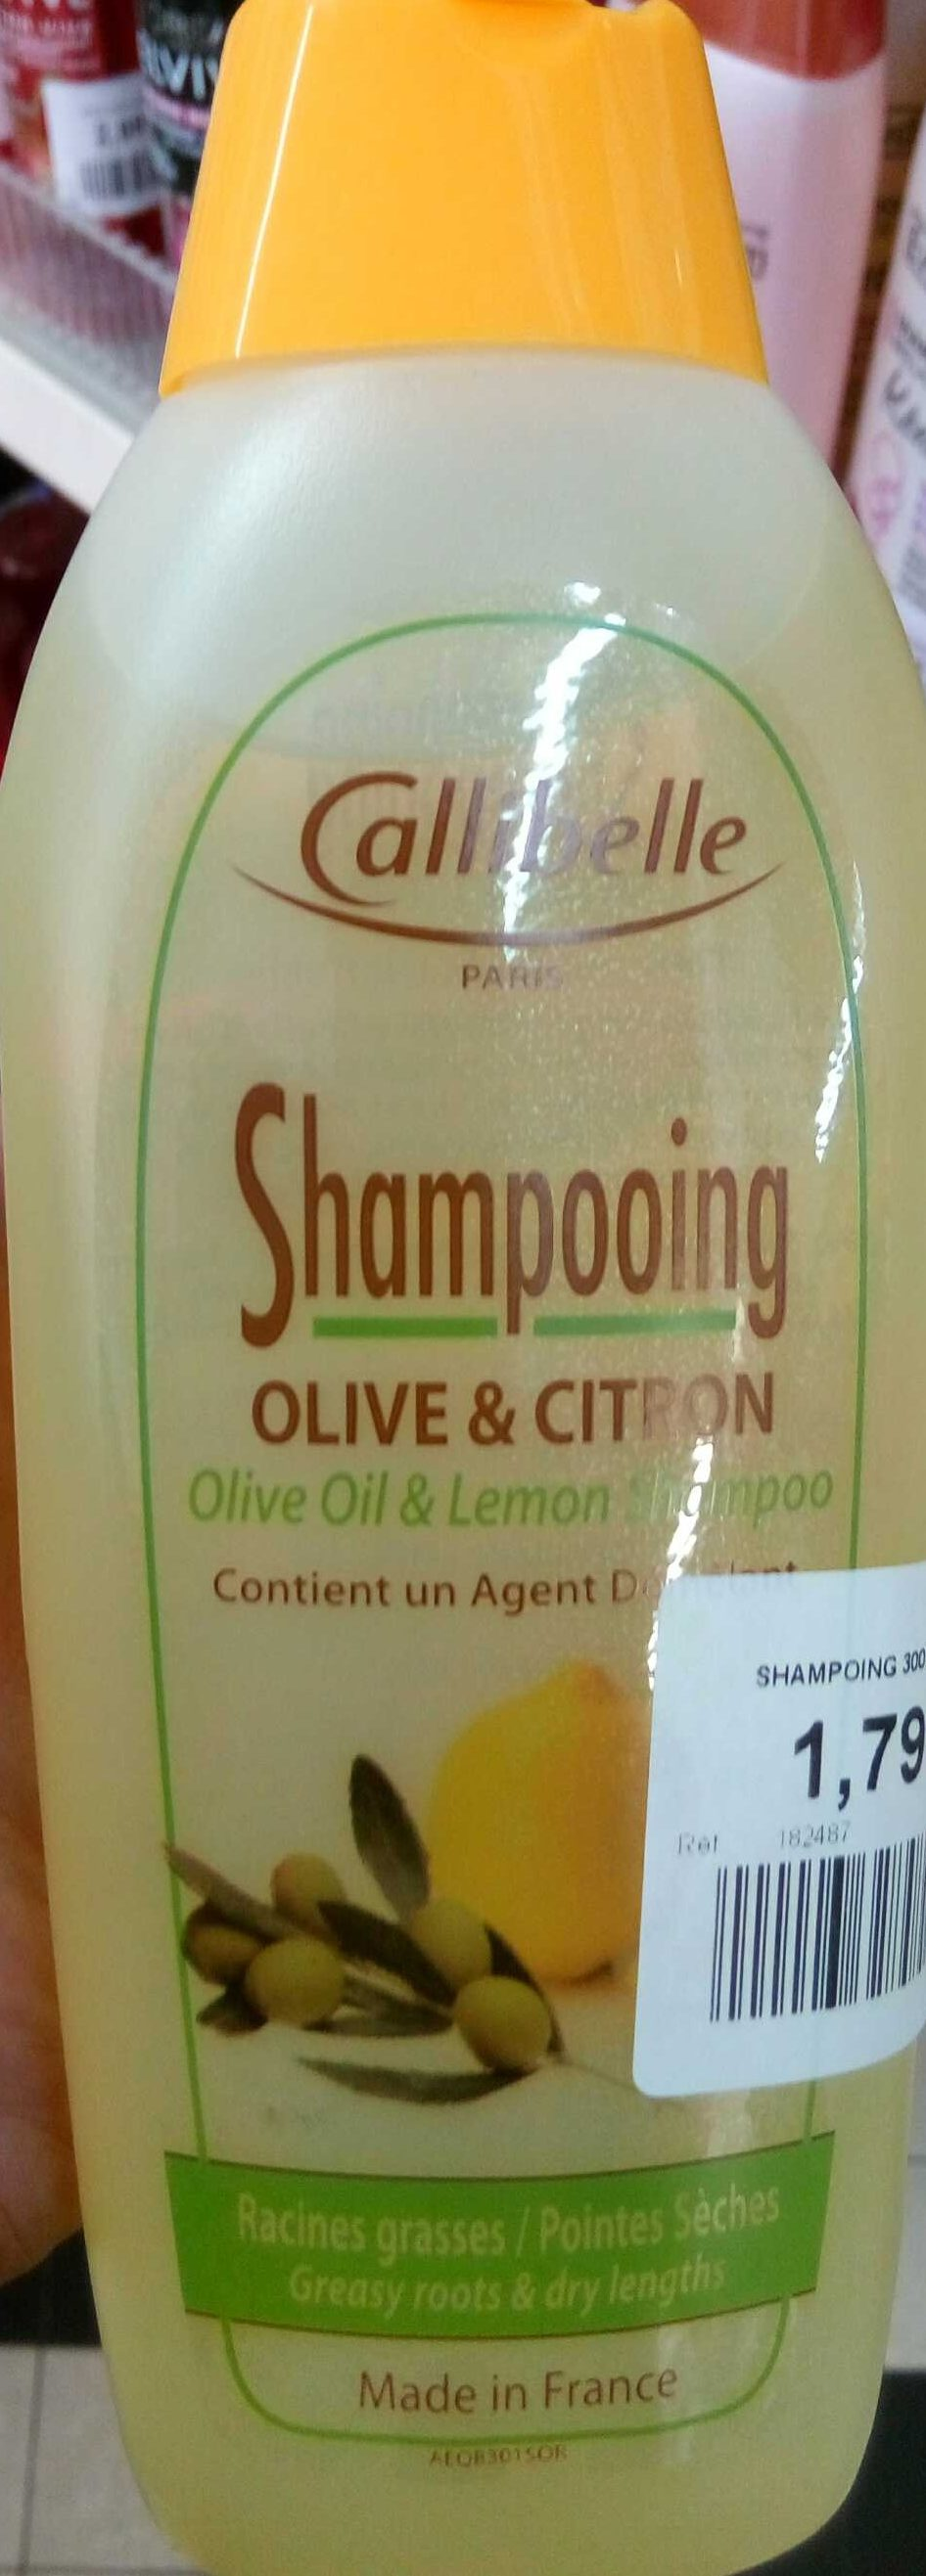 Shampooing olive & citron - Product